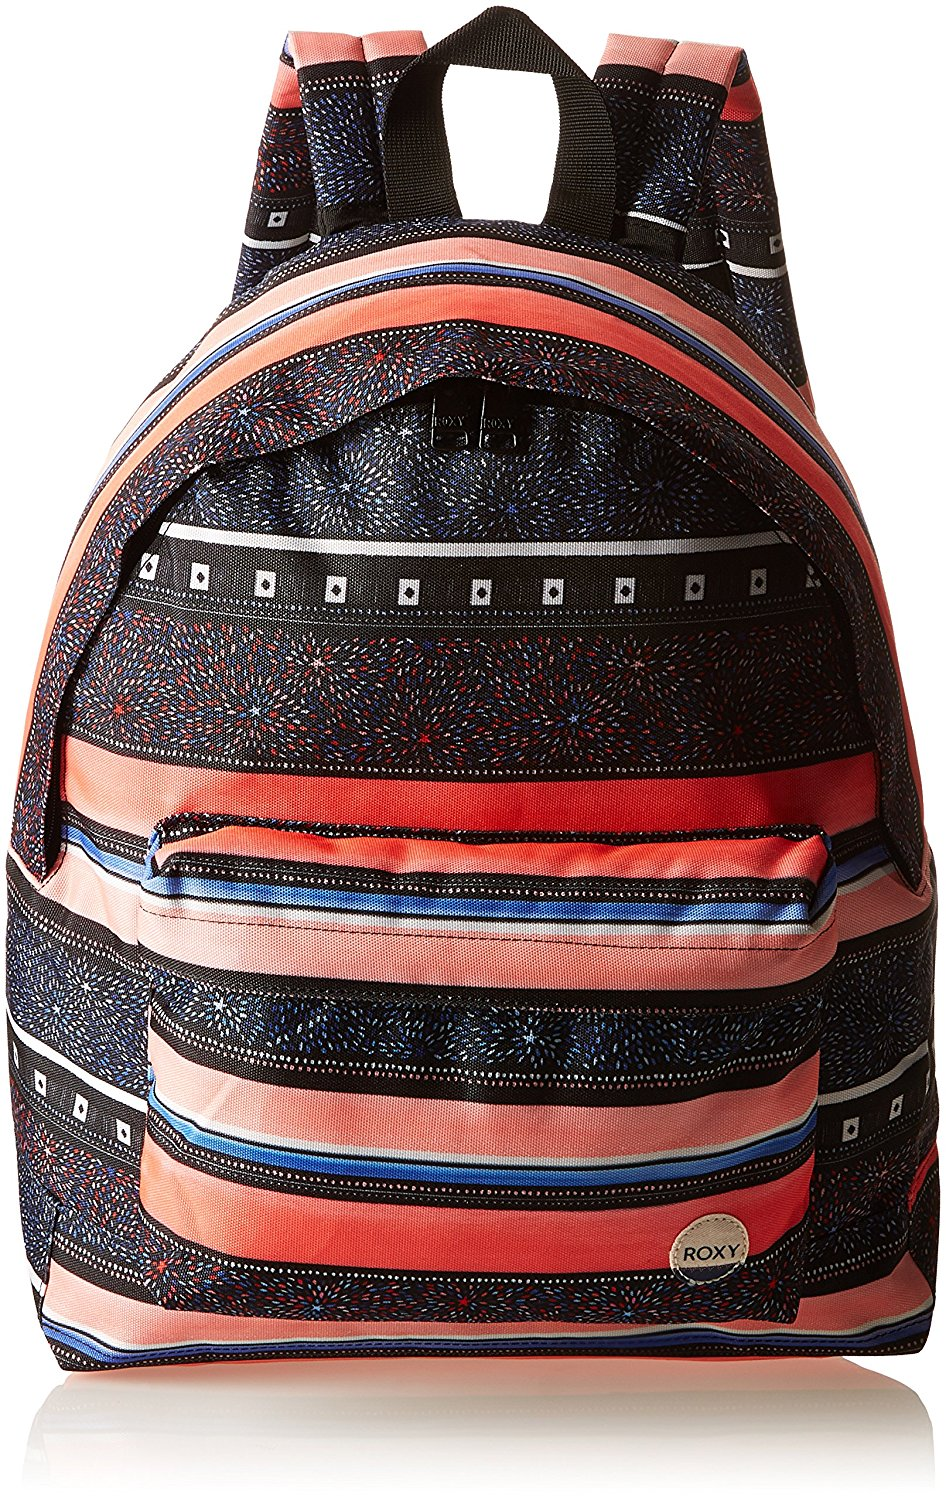 b363581f0a Cheap Roxy Girl Backpack, find Roxy Girl Backpack deals on line at ...